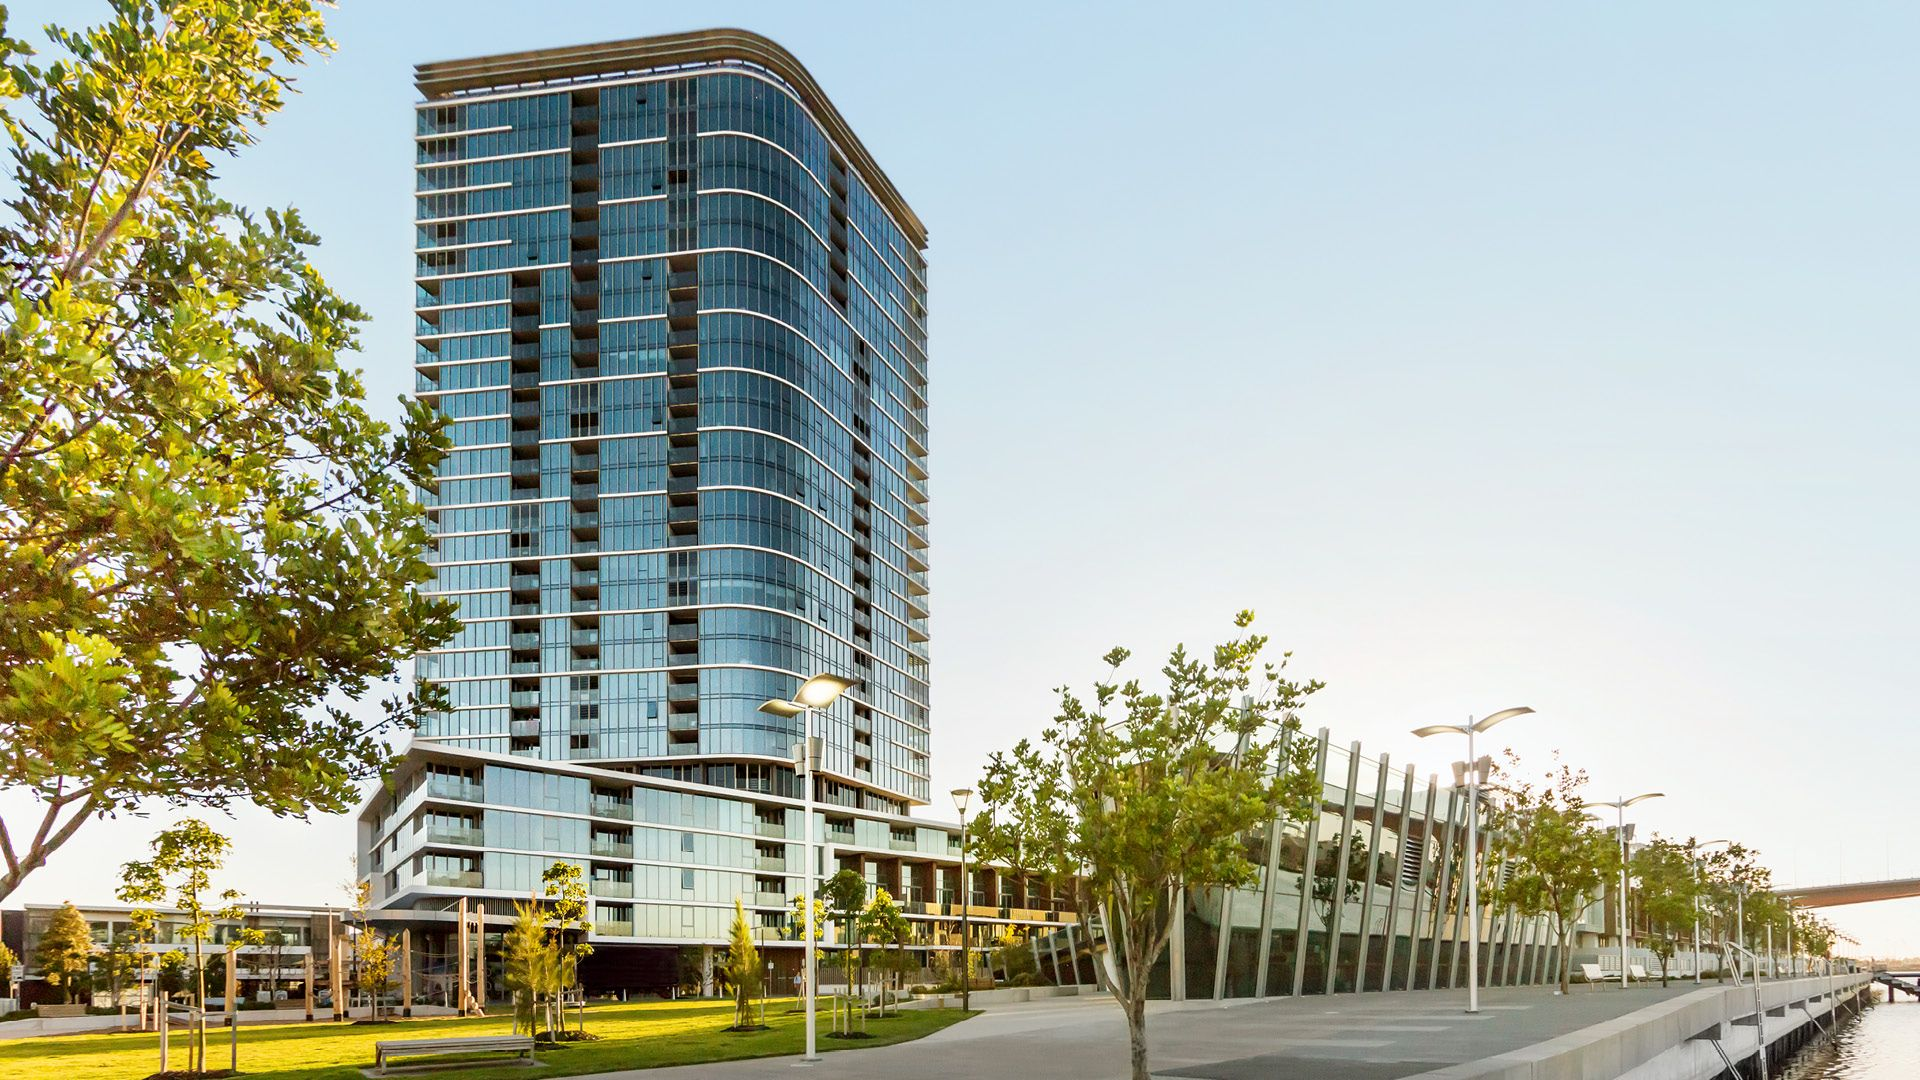 5.01/81 South Wharf Drive, Docklands VIC 3008, Image 0